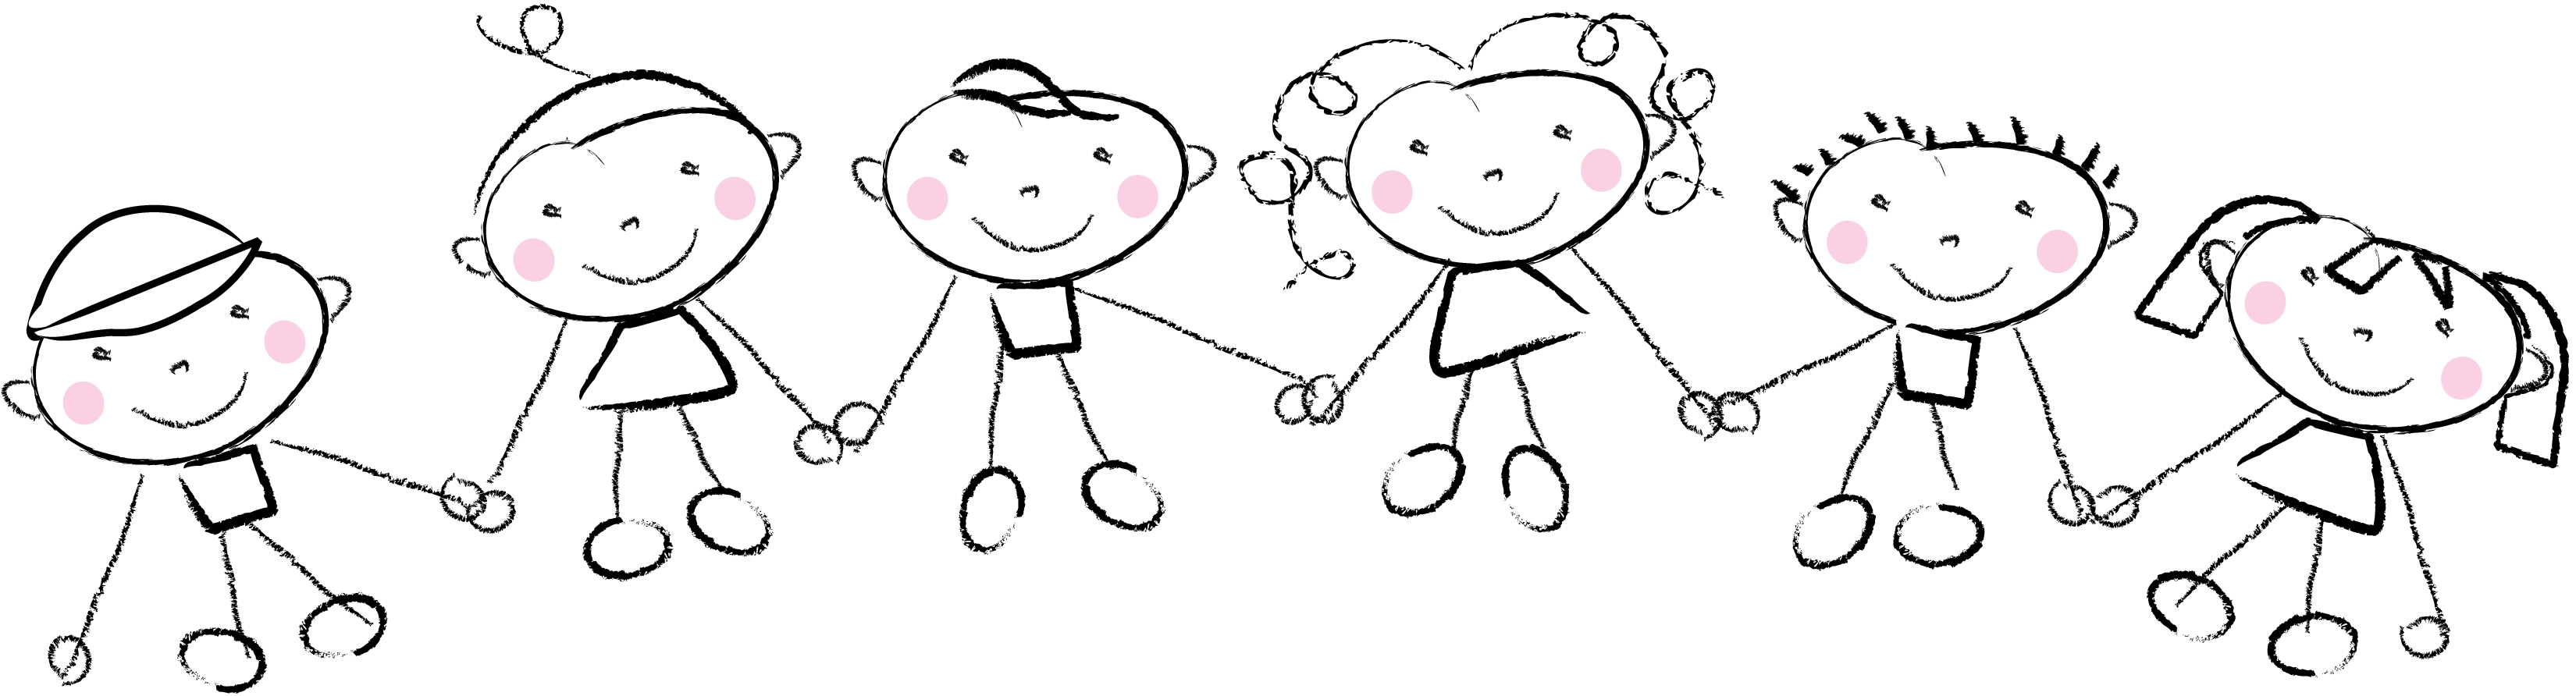 Free Kids Holding Hands Clipart Black And White, Download.